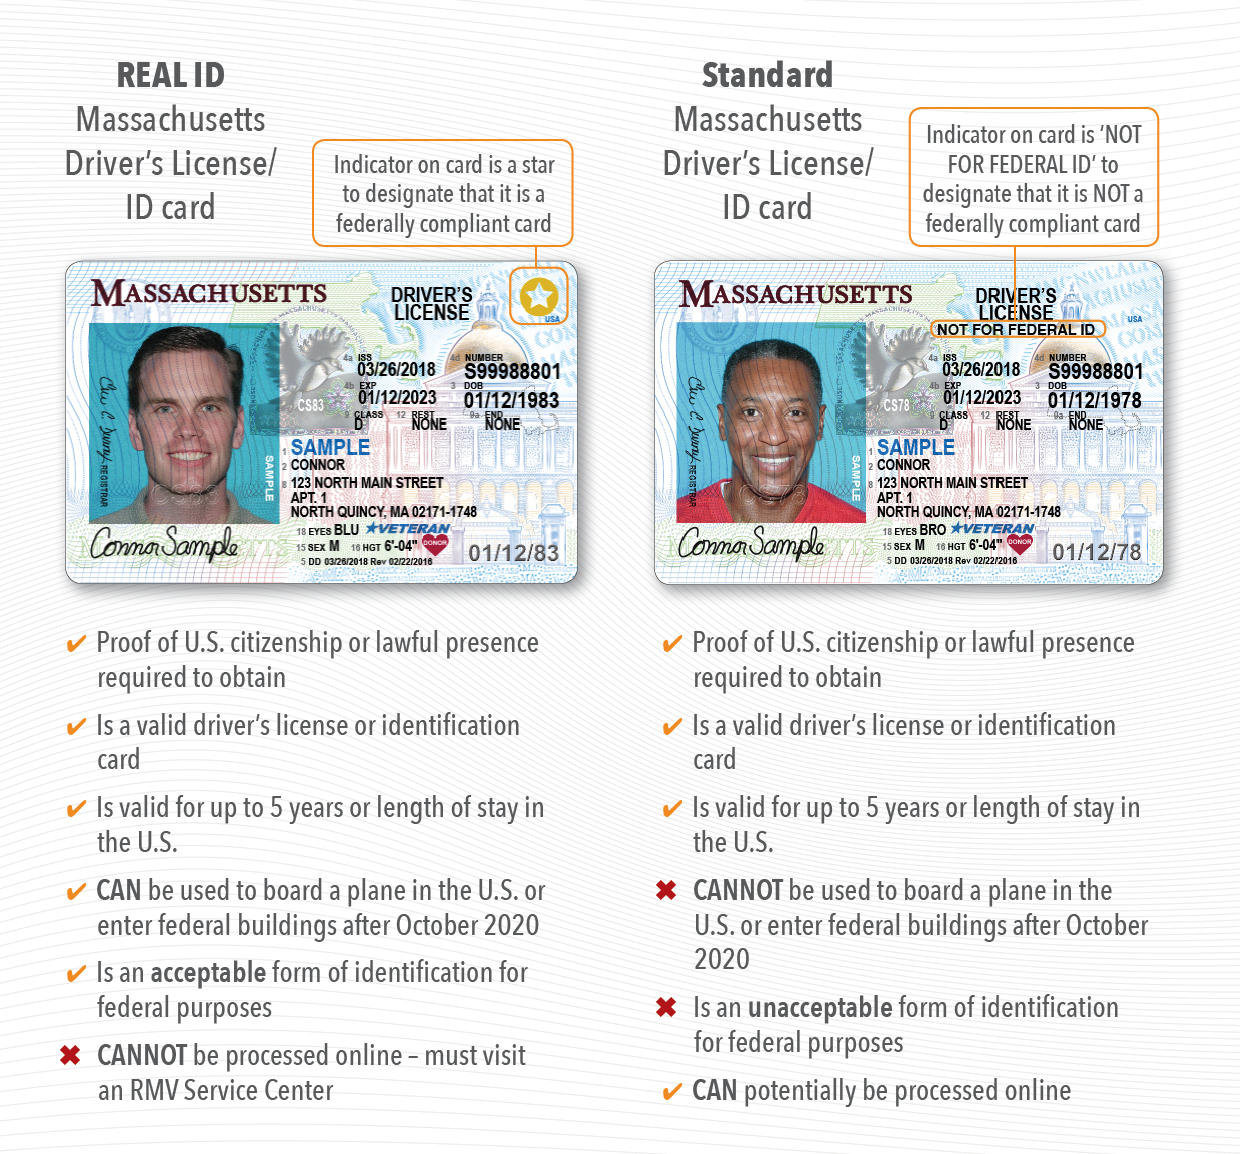 compare cards image